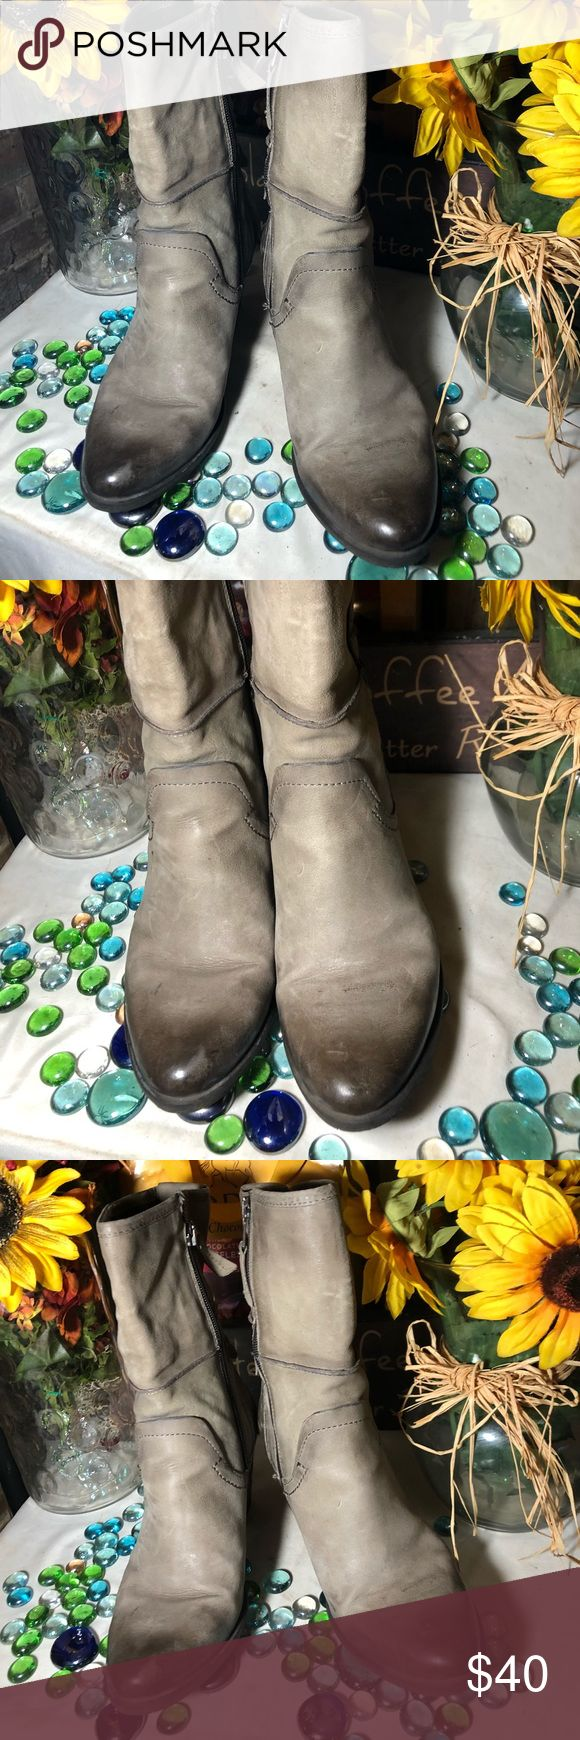 MJUS ANKLE BOOTS Sz 39M- good condition- genuine leather- distressed toe area- 10' side zipper- 3' heels- made in Bosnia- super cute. MJUS Shoes Ankle Boots & Booties